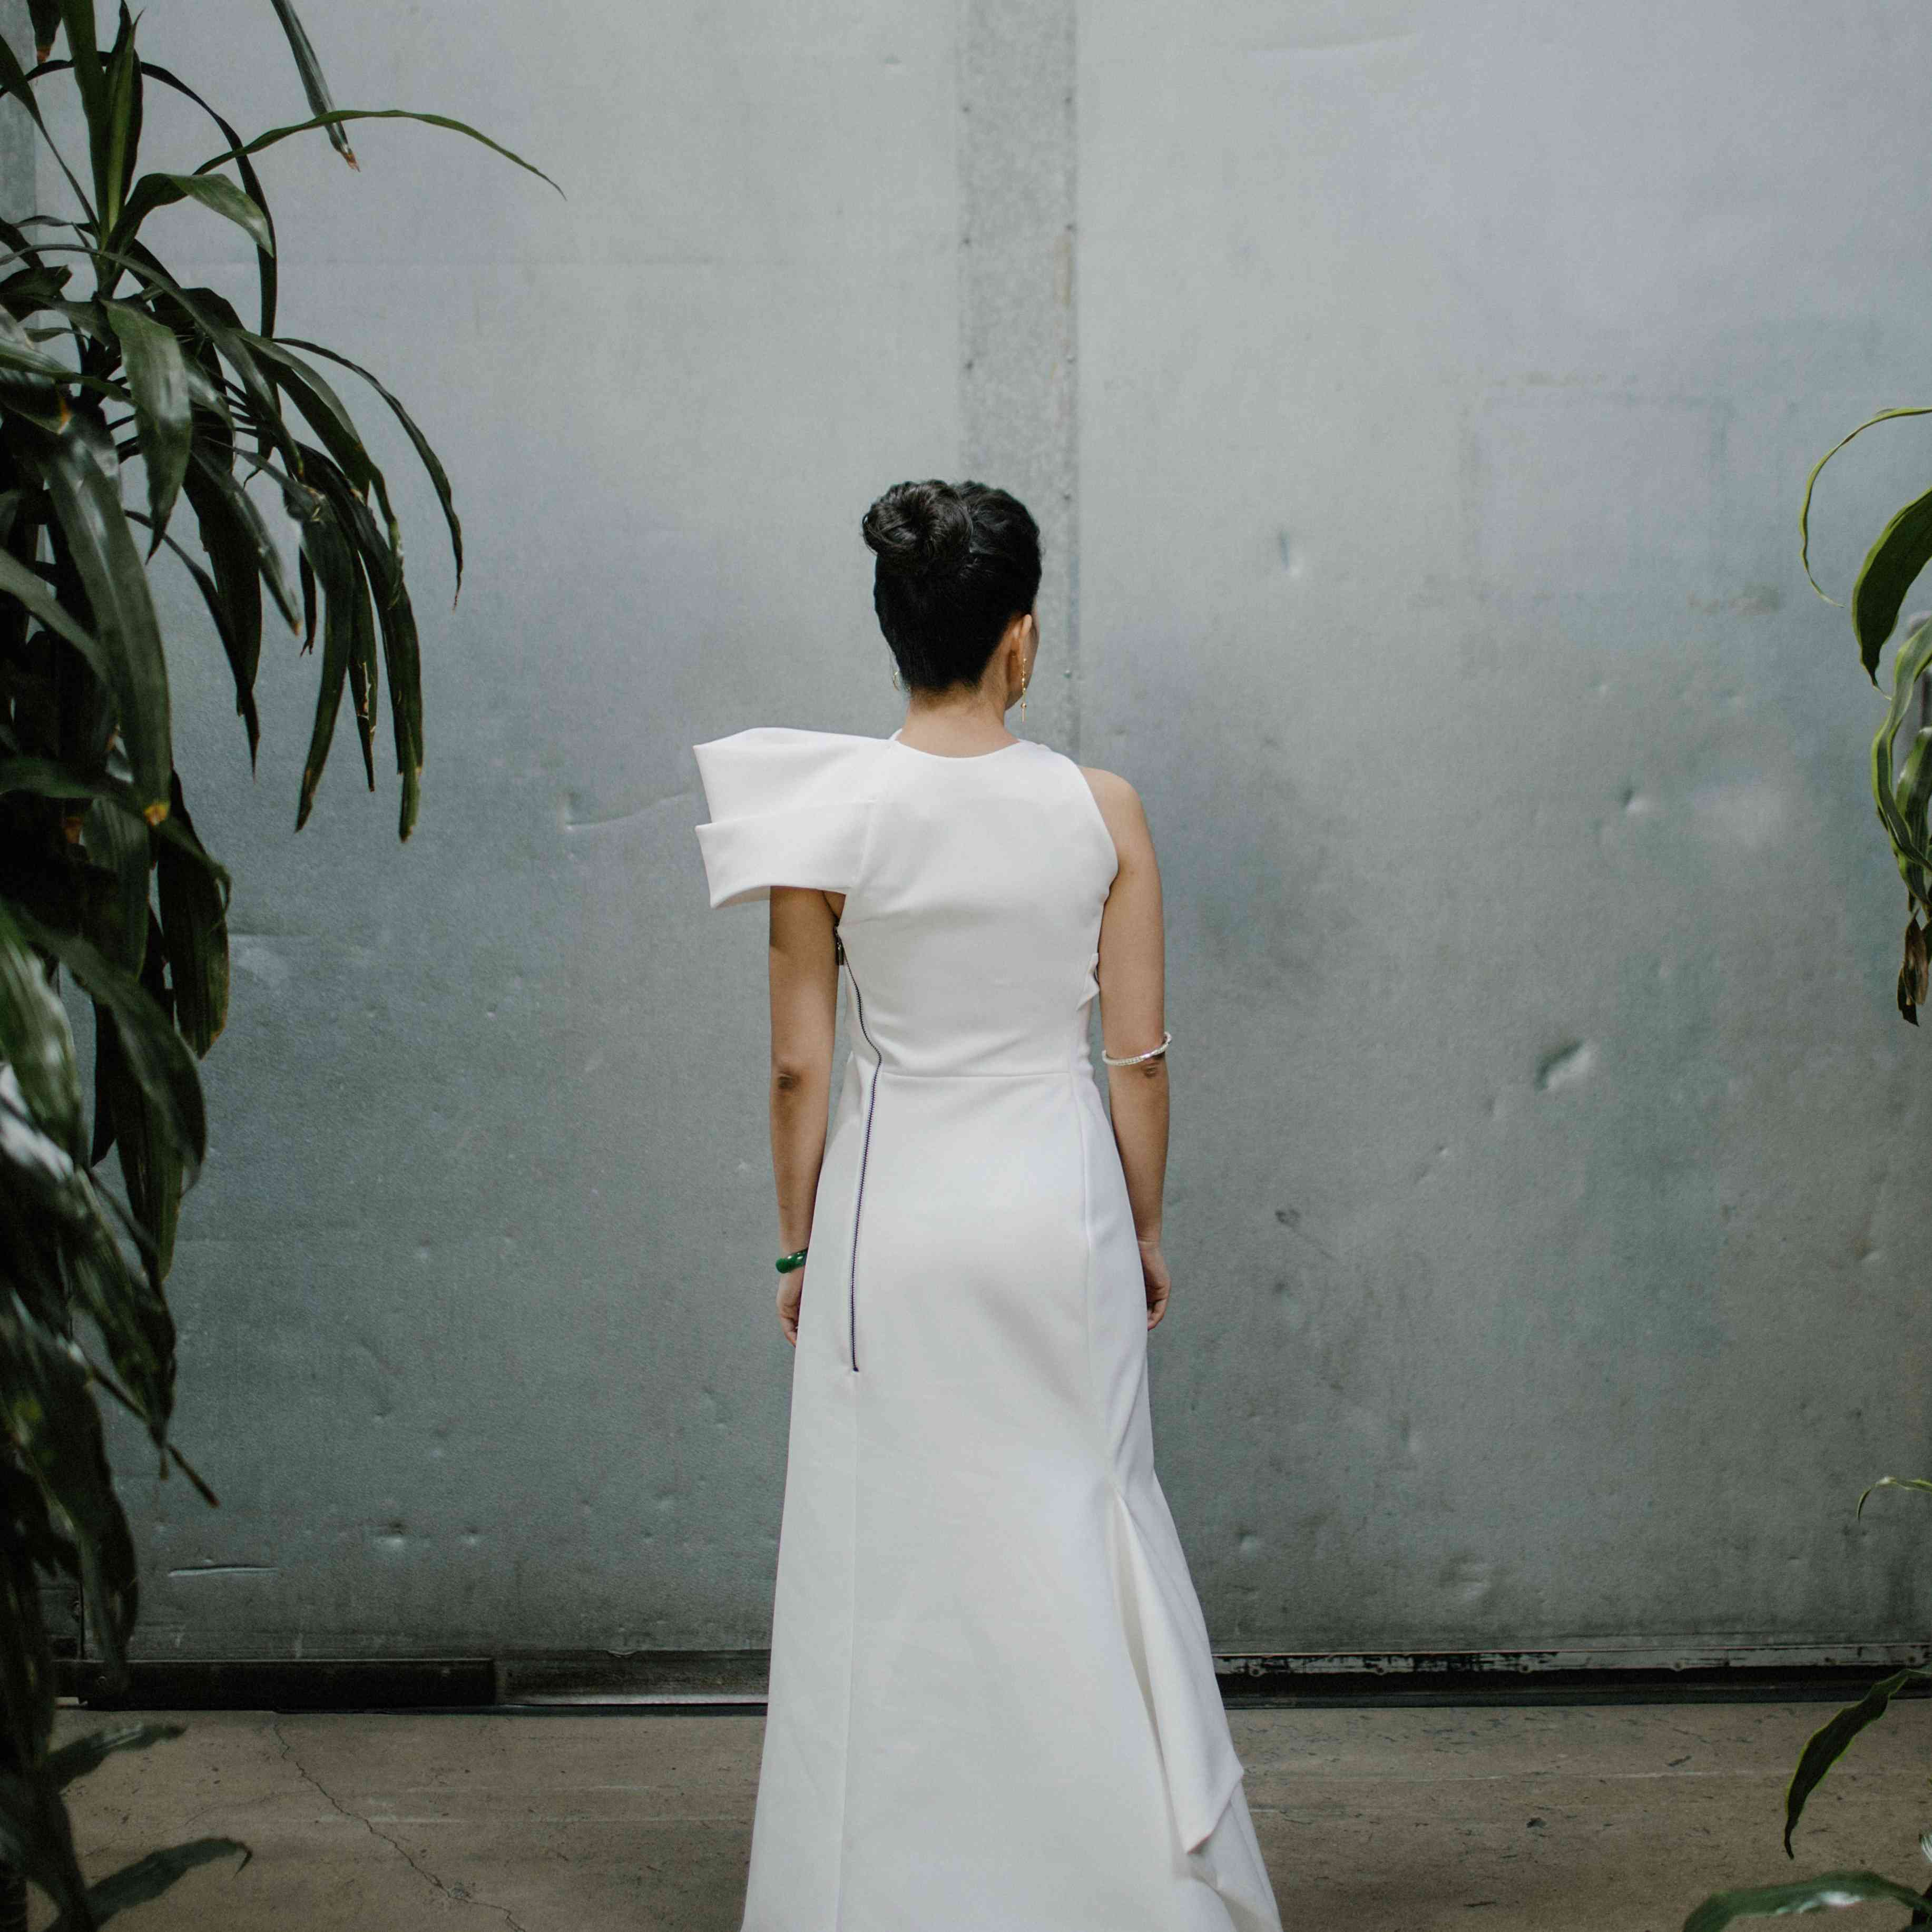 <p>Bride shot from behind</p><br><br>